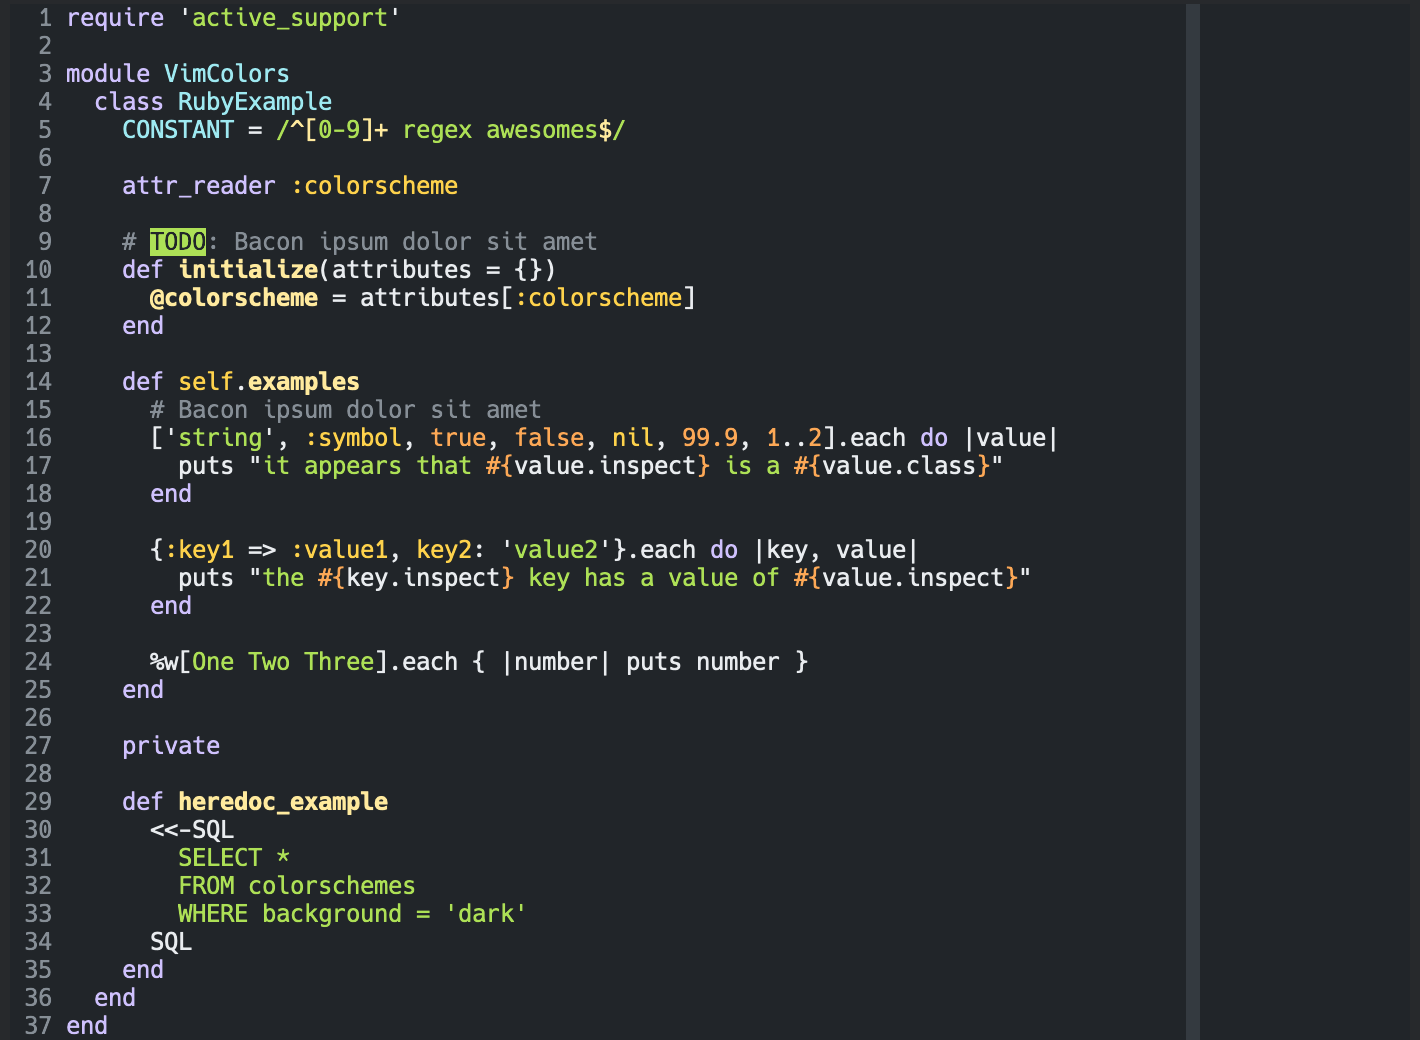 open-color.vim with dark background in GUI